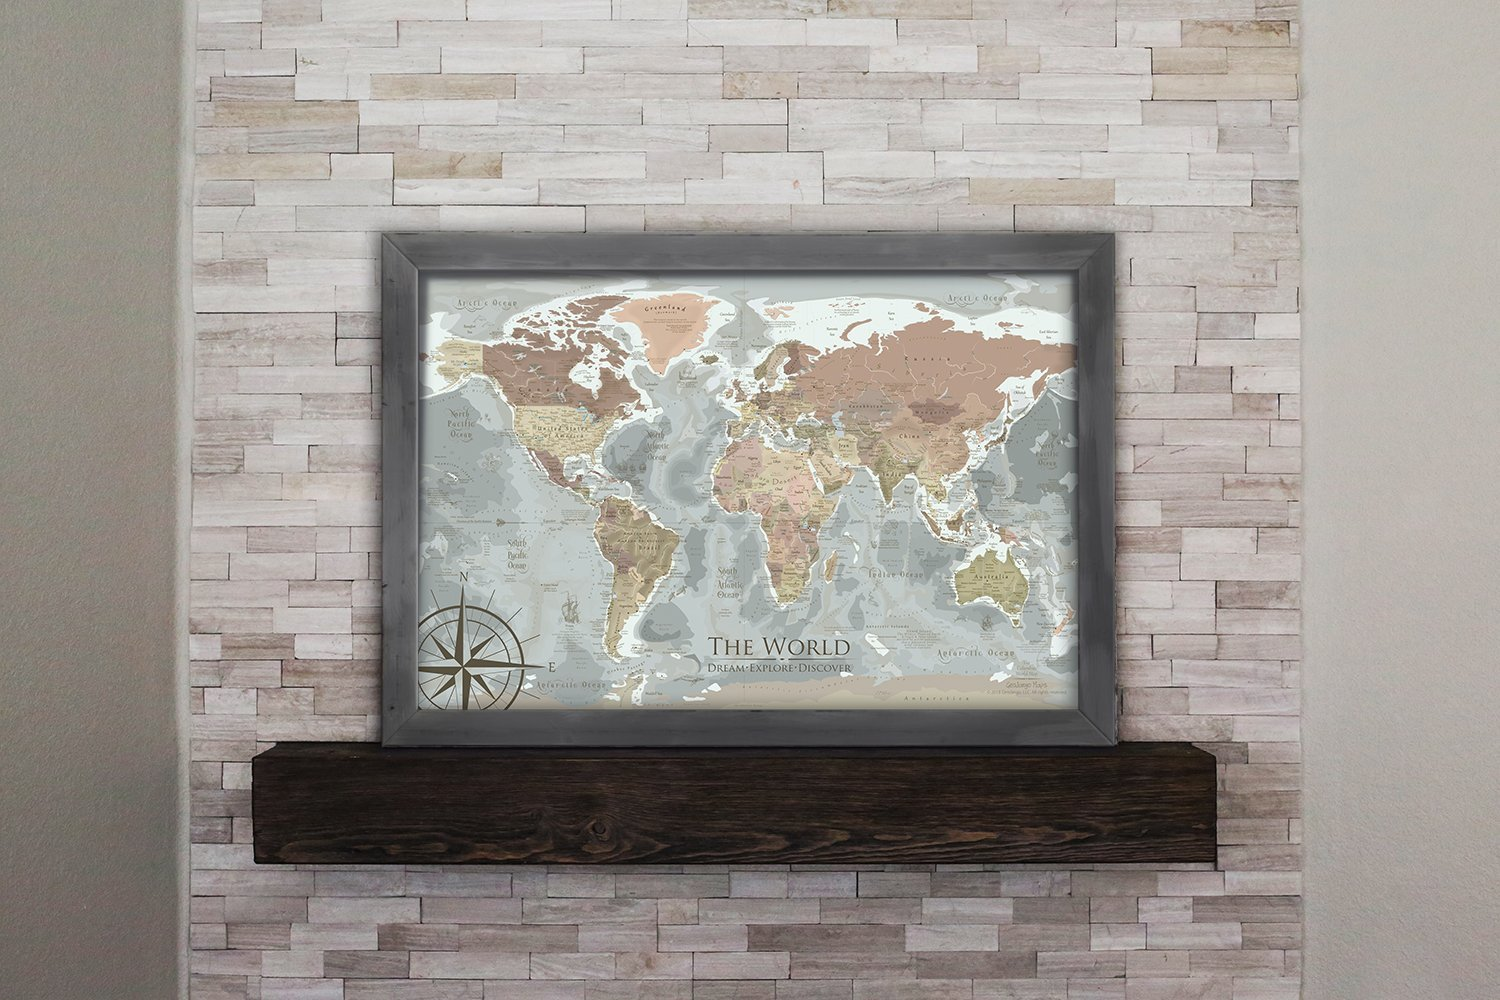 World Travel Map Pin Board - The Columbus World Map - Includes 100 map pins